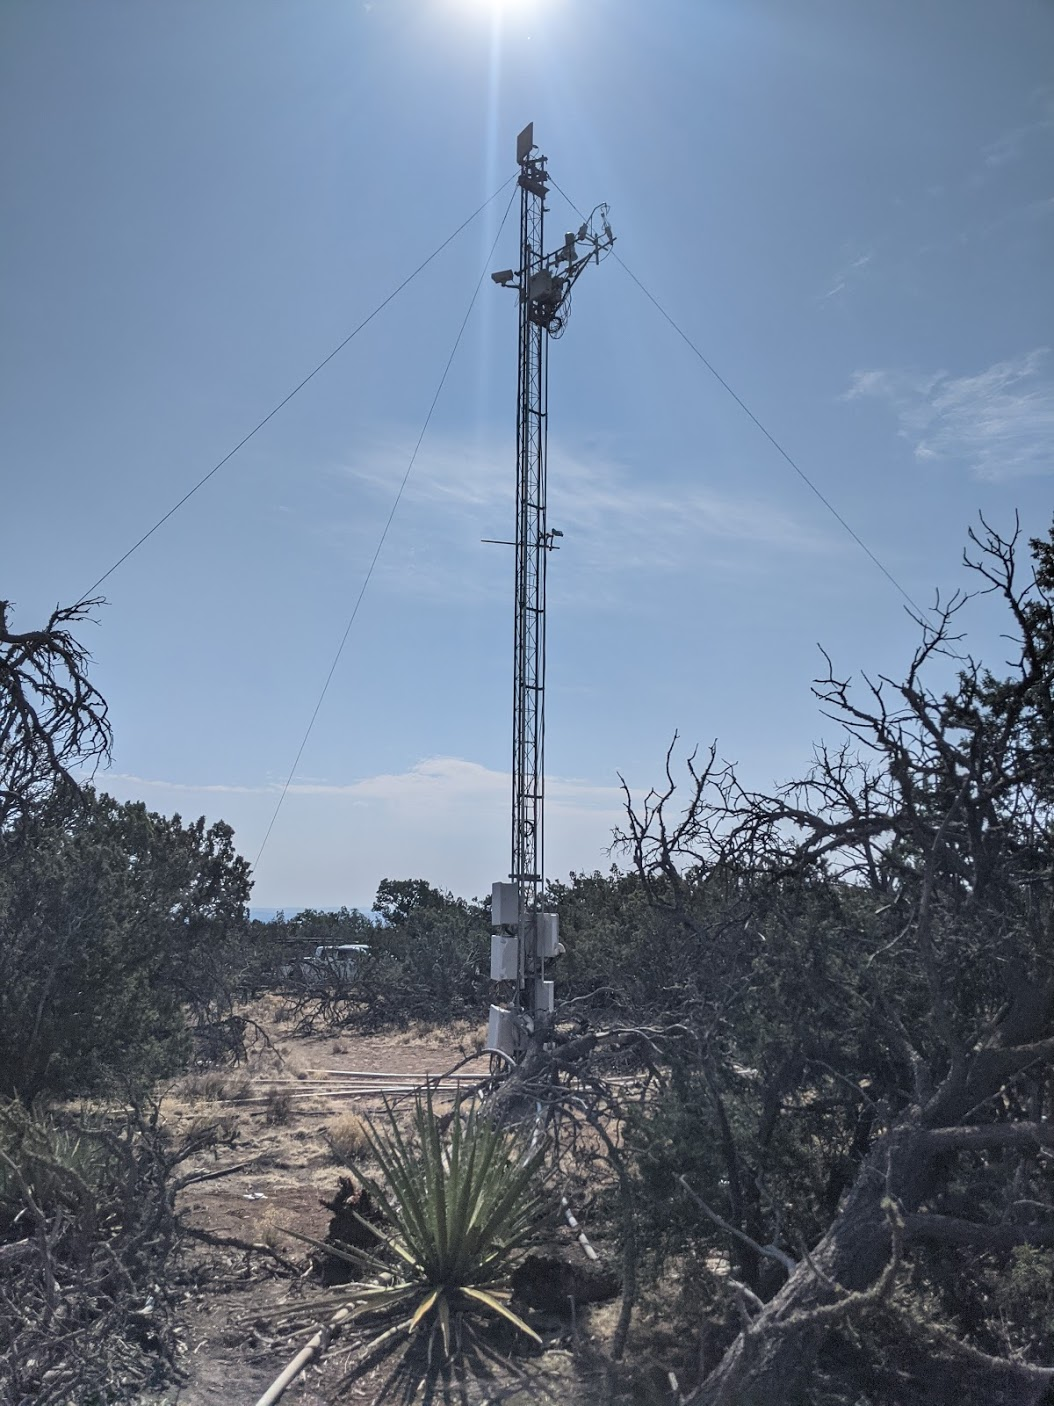 A picture of a flux tower in a pinyon-juniper woodland